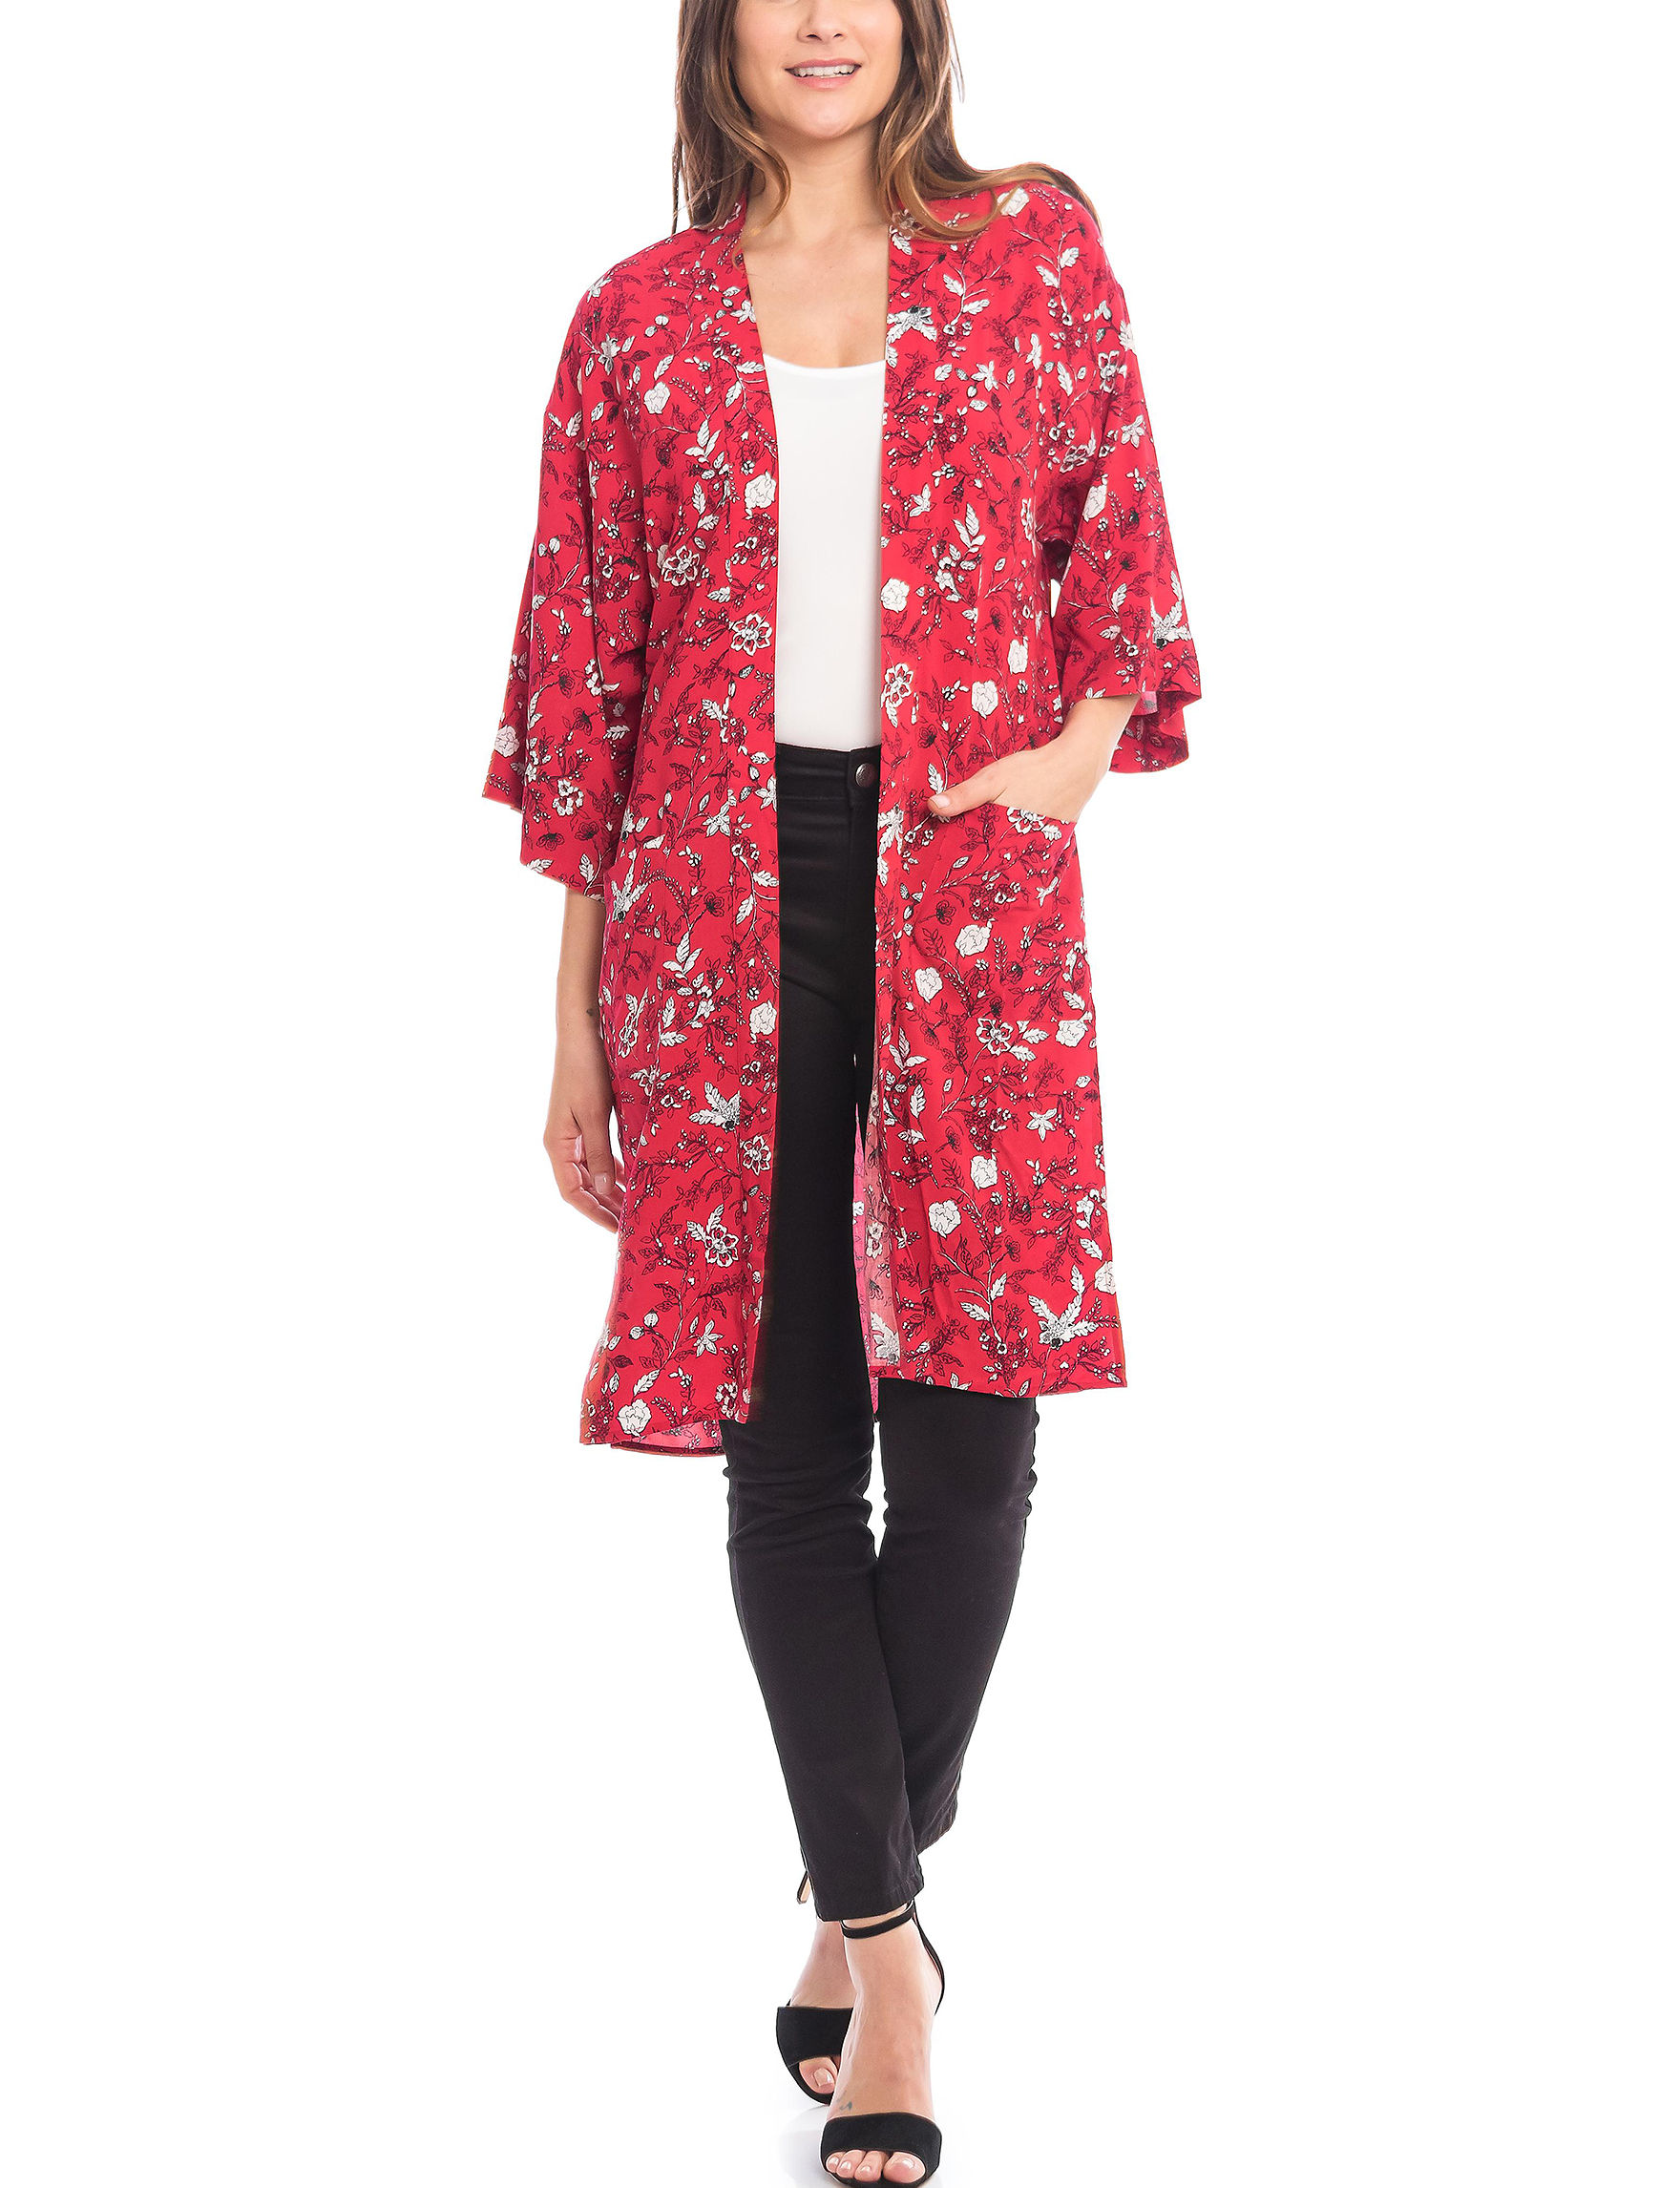 Skyes The Limit Red Multi Kimonos & Toppers